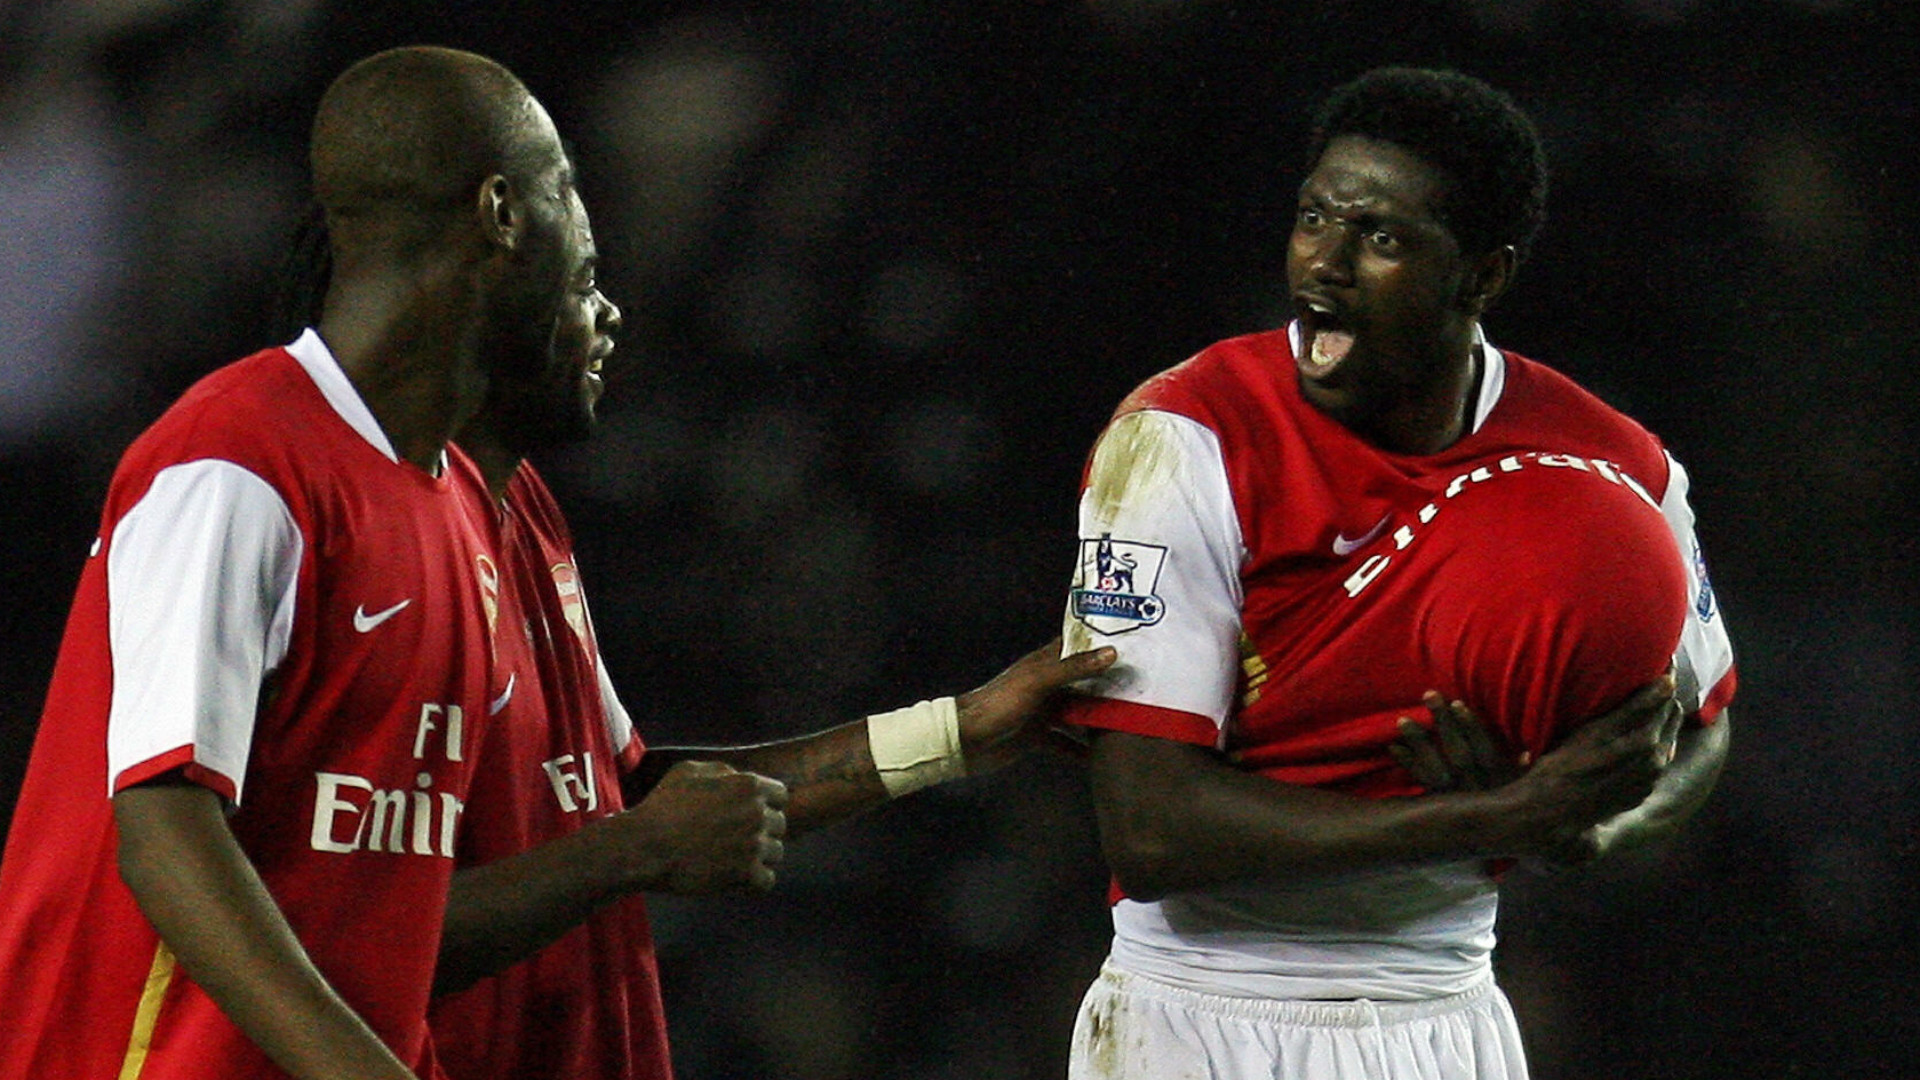 Emmanuel Adebayor Arsenal Derby 2008